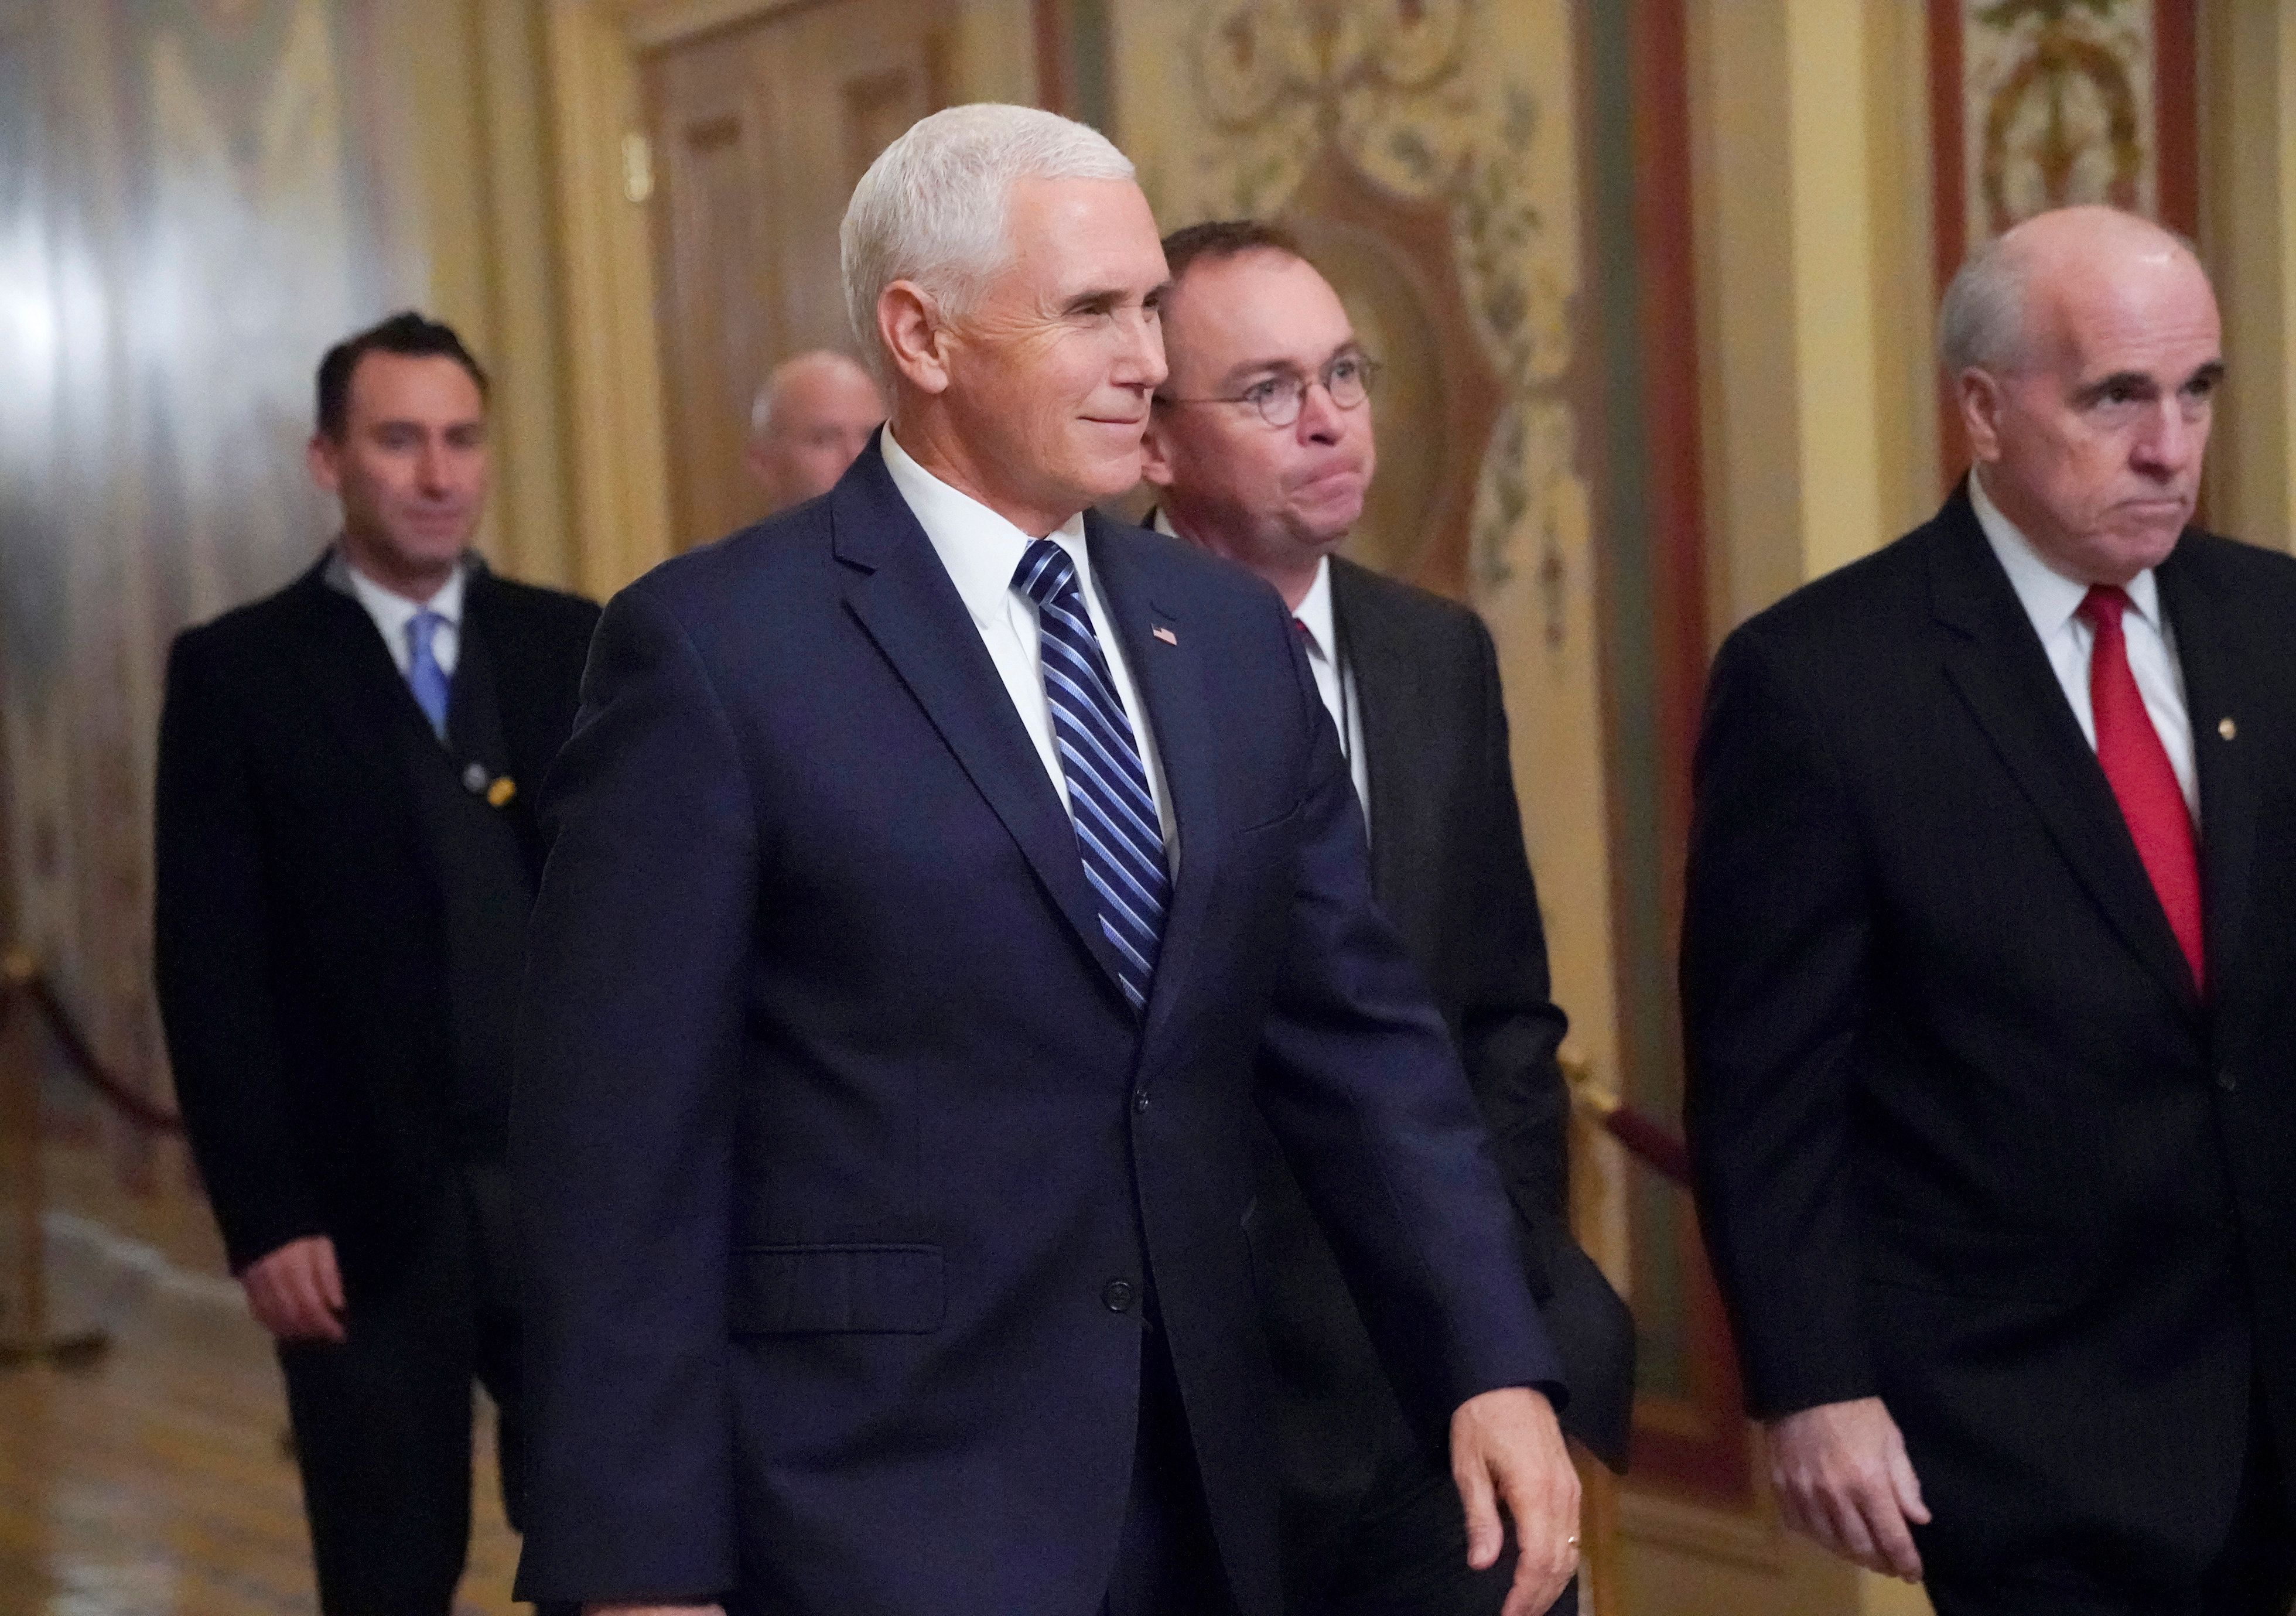 Vice President Mike Pence, center, left, with acting-White House Chief of Staff Mick Mulvaney, center right, arrive at the Capitol as Congress resumes talks on funding without a compromise over money for President Donald Trump's promised wall along the U.S.-Mexico border, in Washington, Saturday, Dec. 22, 2018. (AP Photo/J. Scott Applewhite)